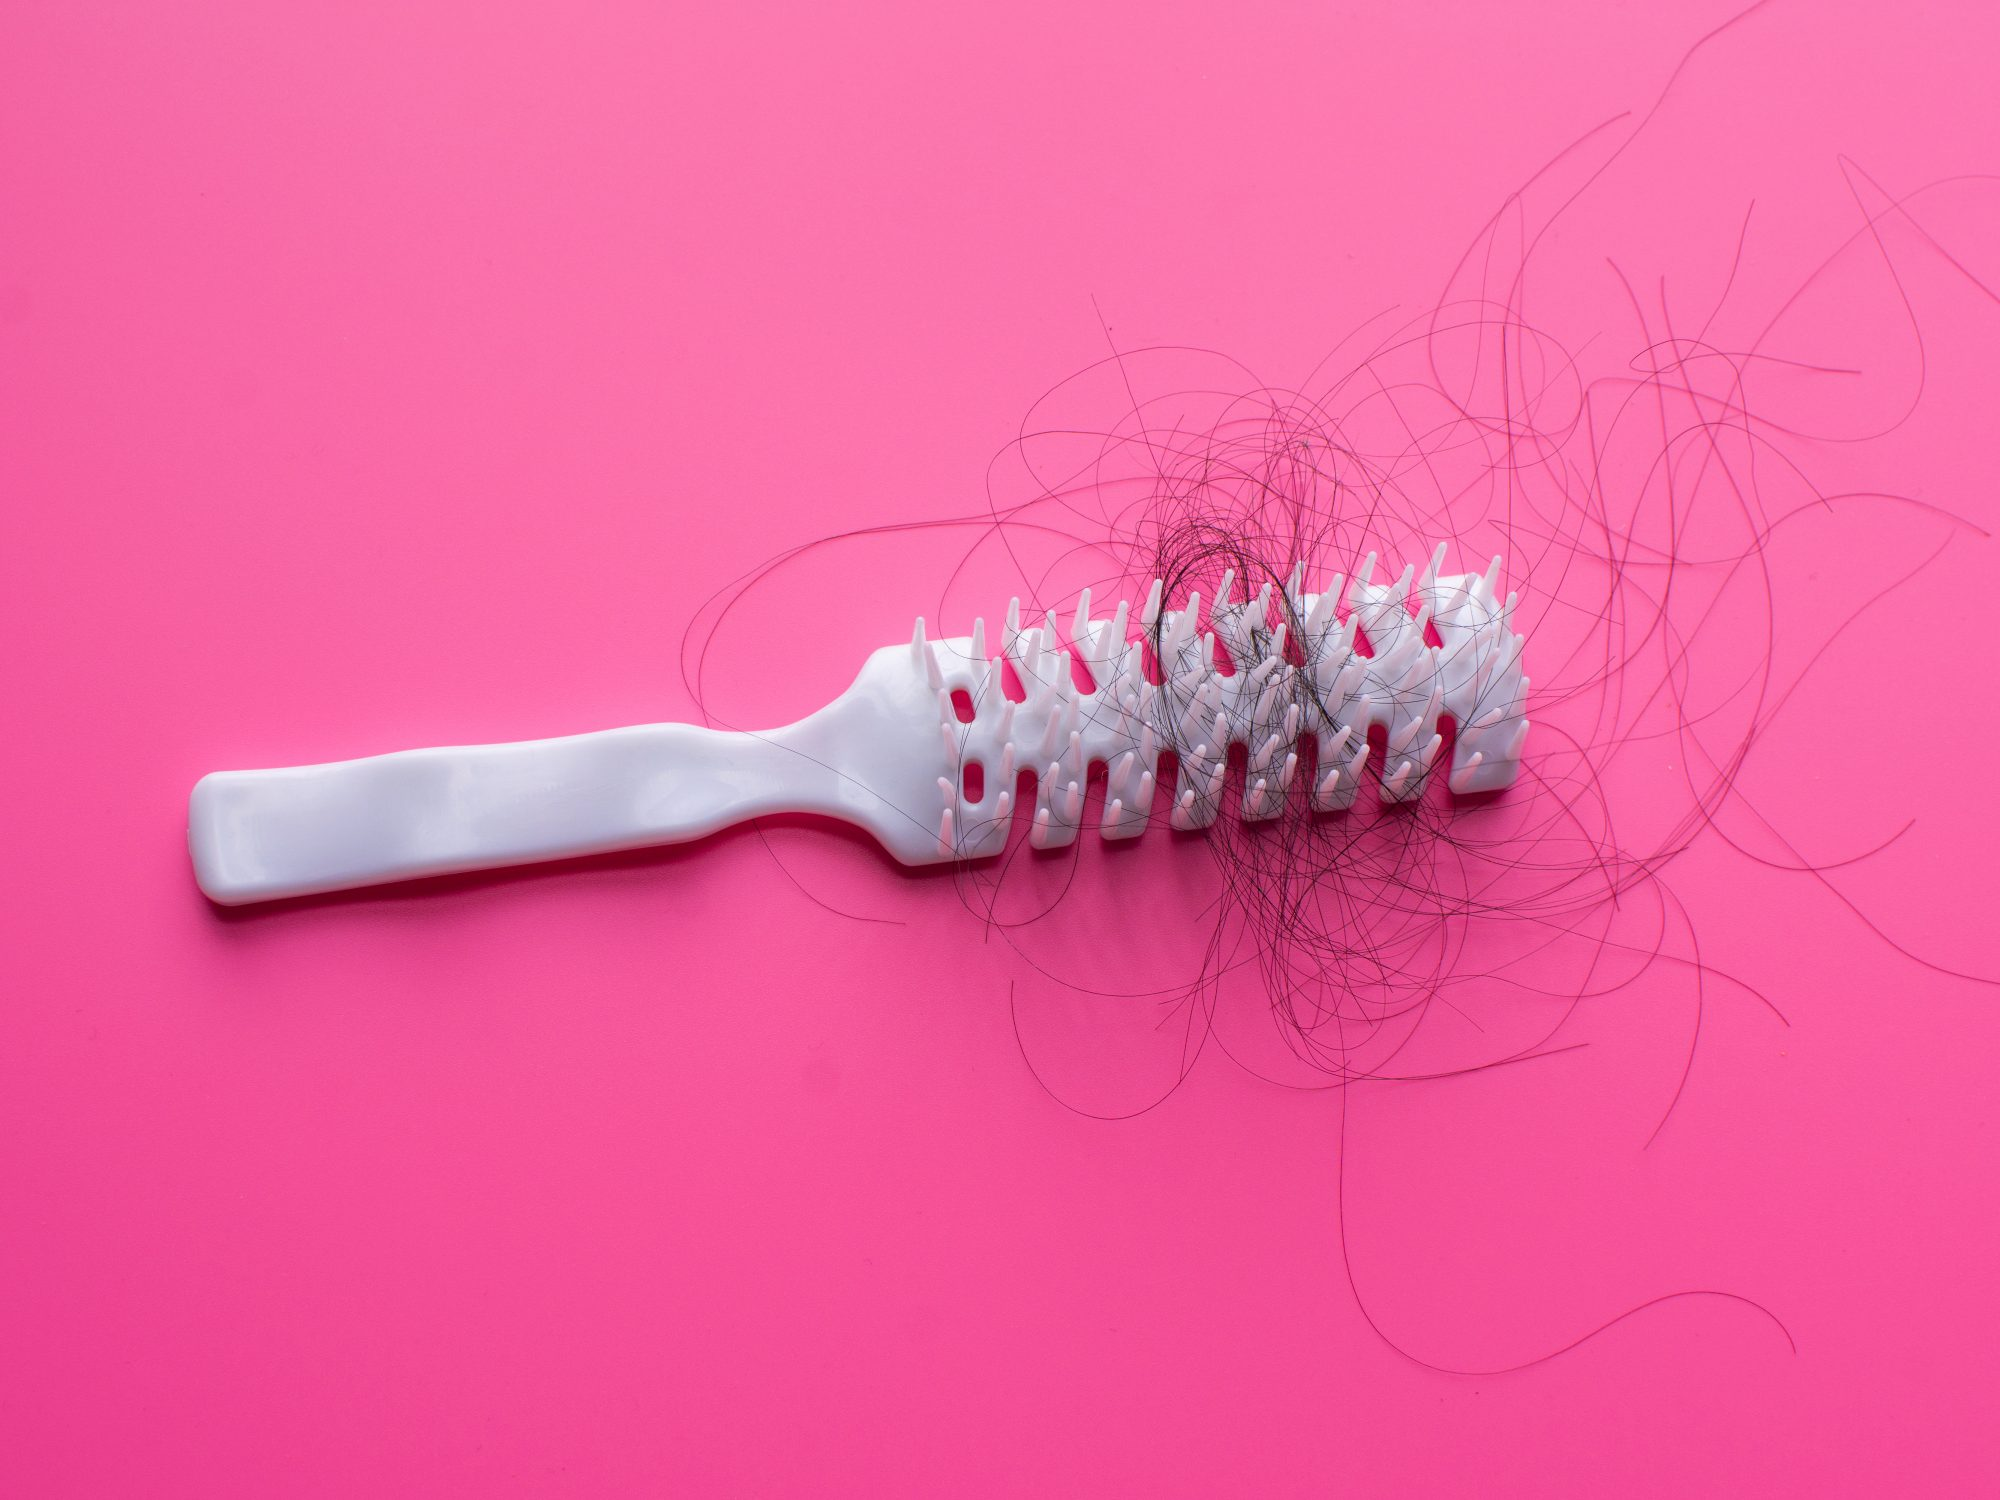 too-much-hair-loss: brush with hair in it